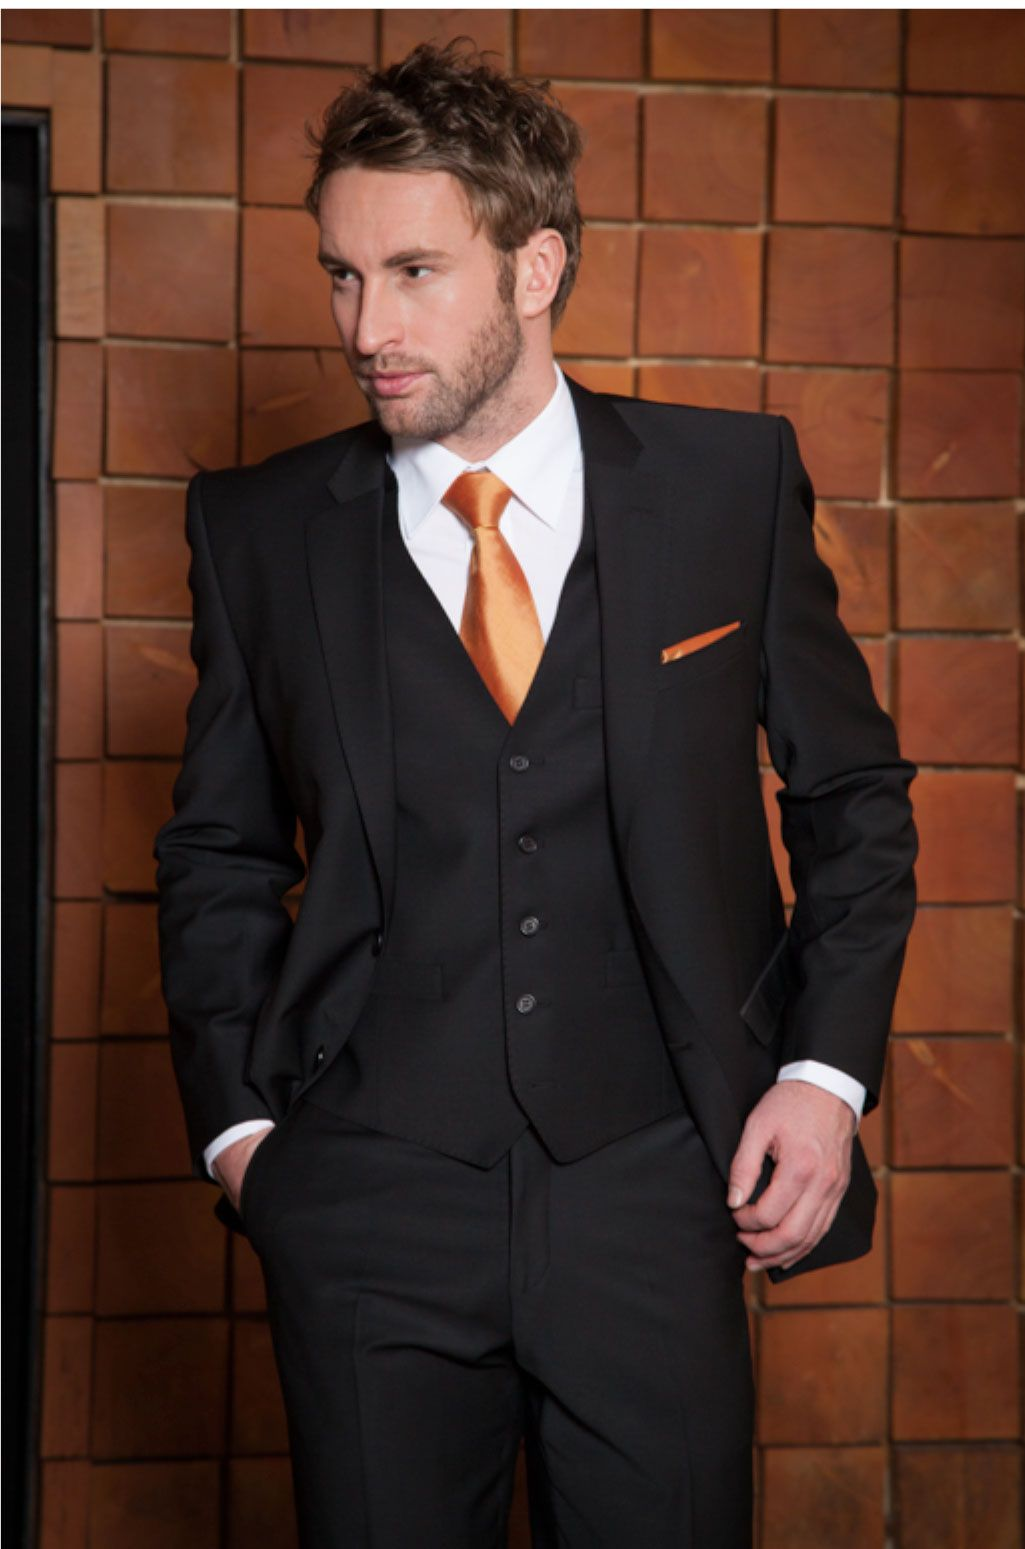 New Tailored Fit suits for Hire for the Groom // Slaters Menswear ...